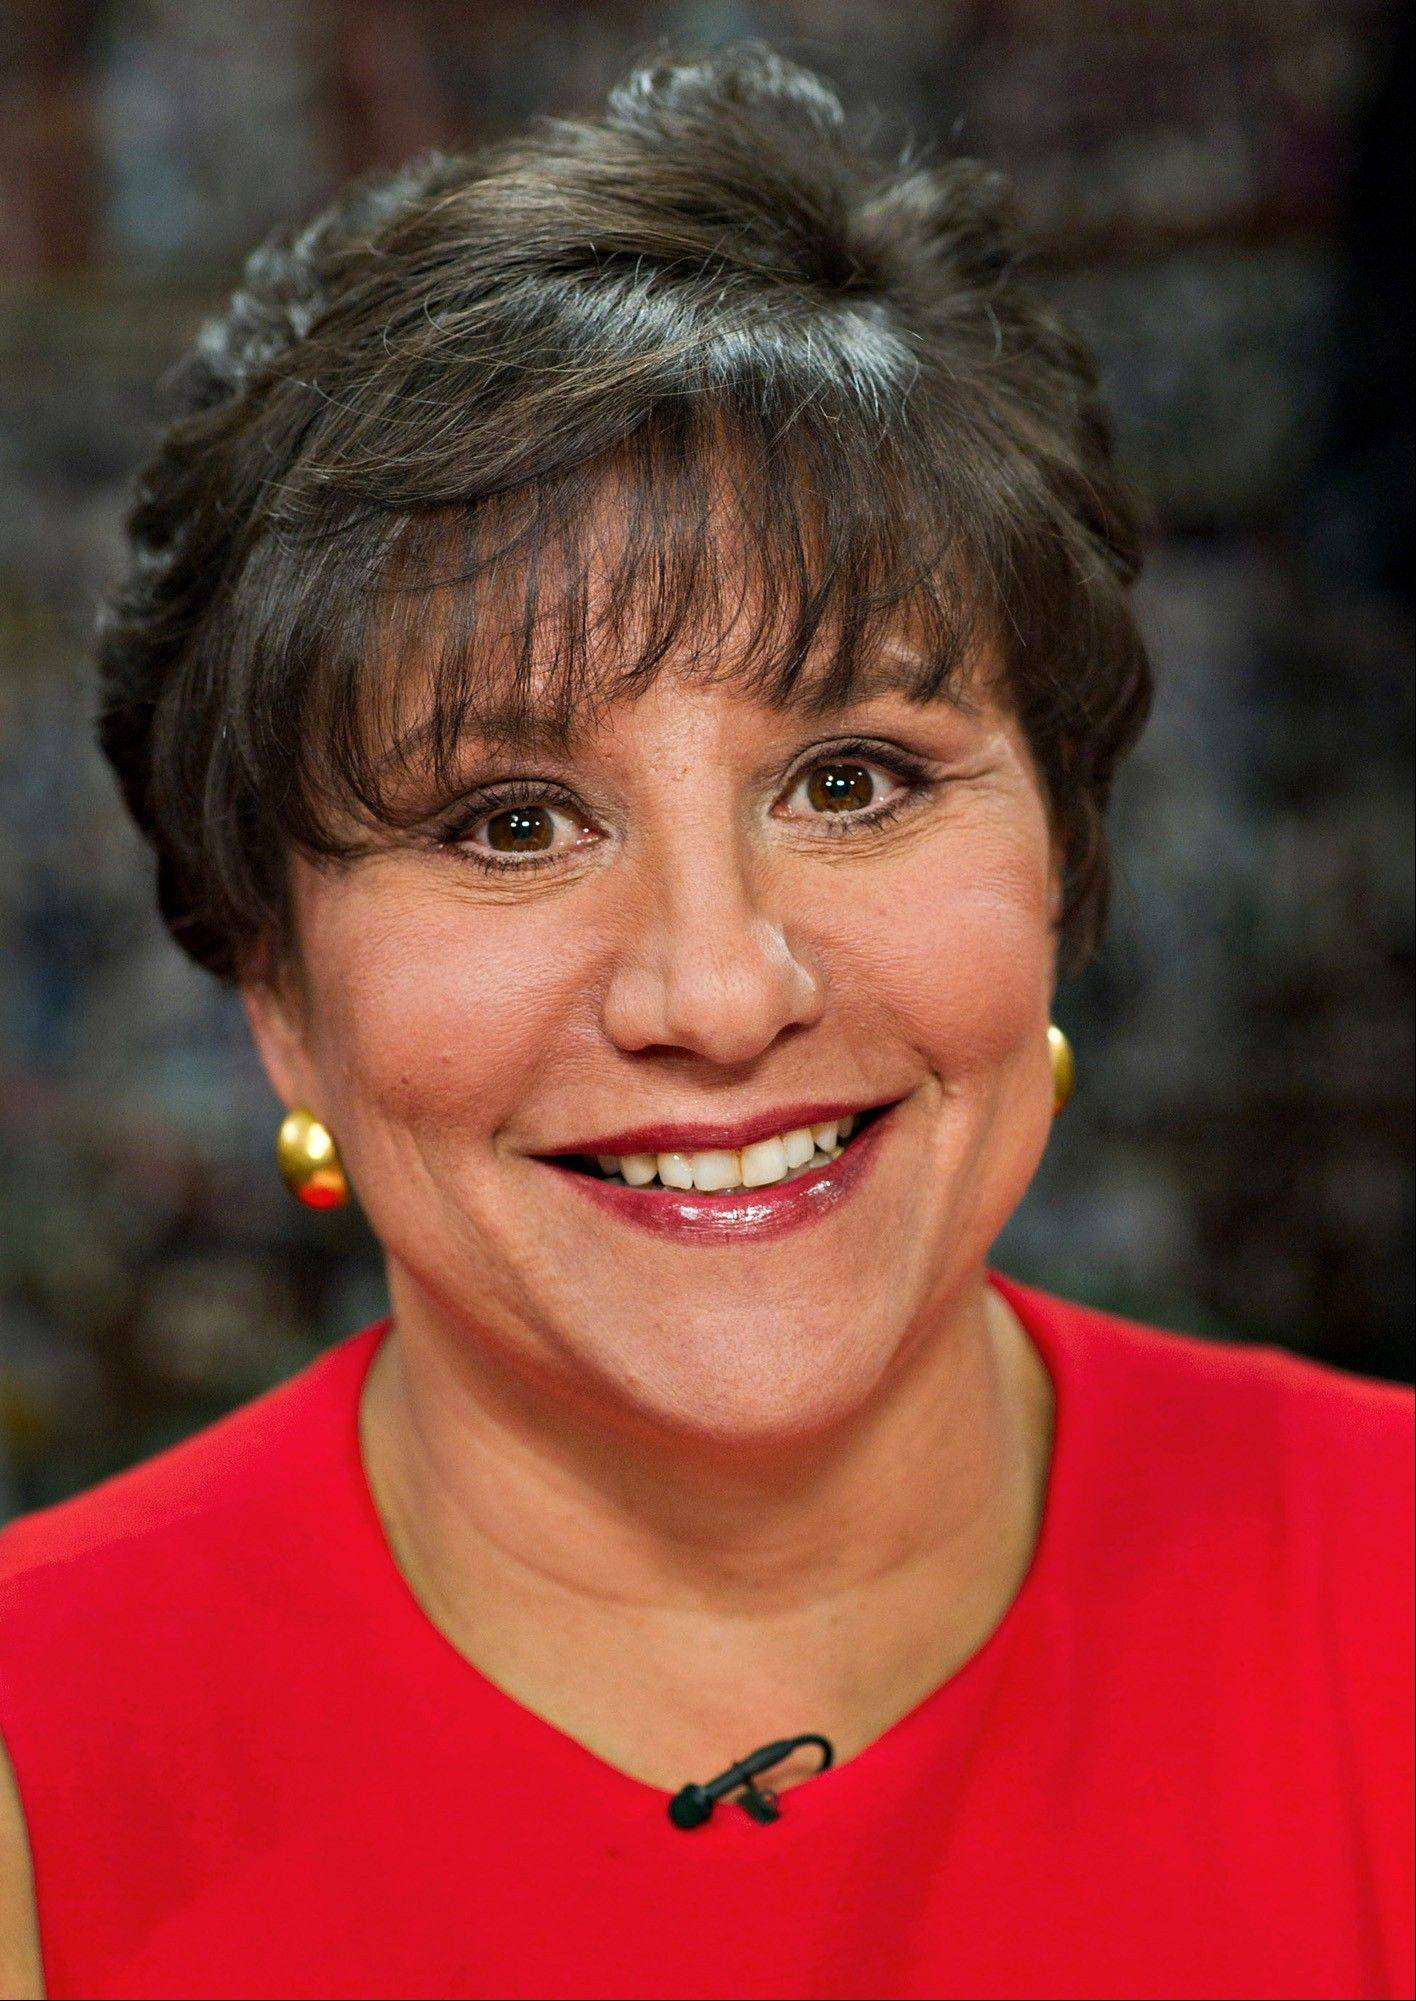 If Penny Pritzker is chosen to serve as commerce secretary, she'll bring a resume showing a full range of business experiences: success, failures, tax lawsuits and even squabbling among heirs over trust funds.